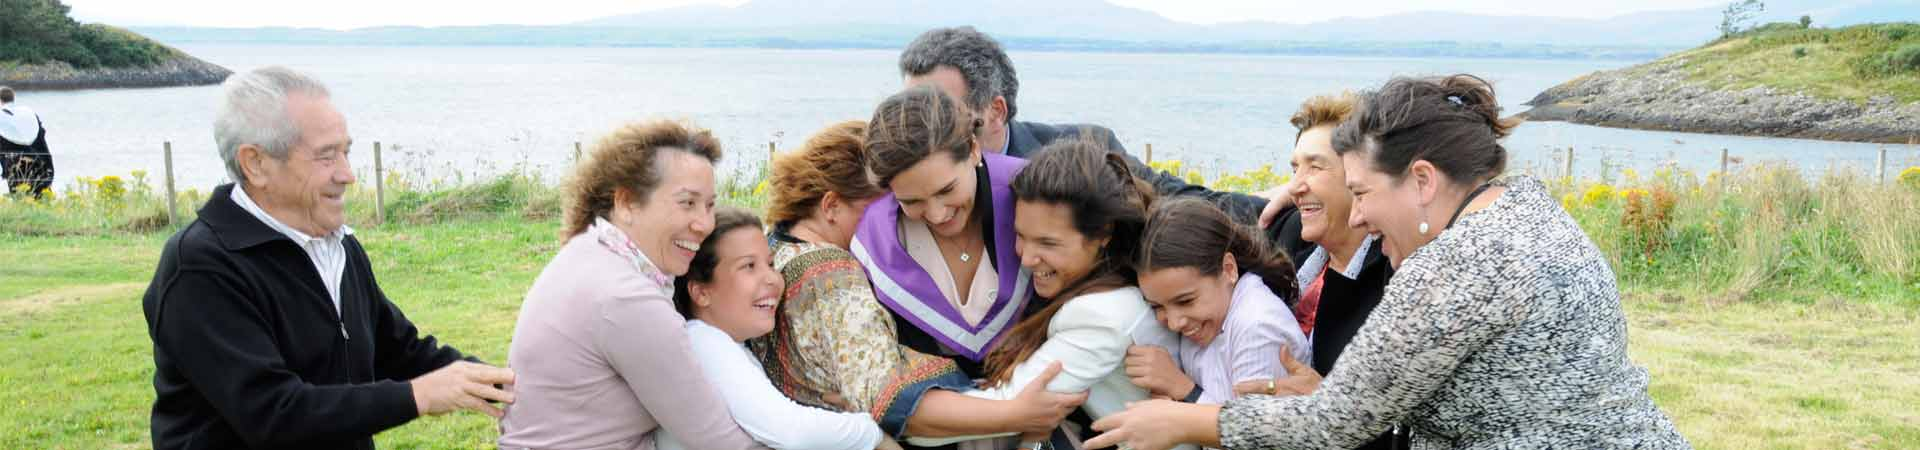 Image of a happy Spanish family during SAMS UHI graduation 2015.